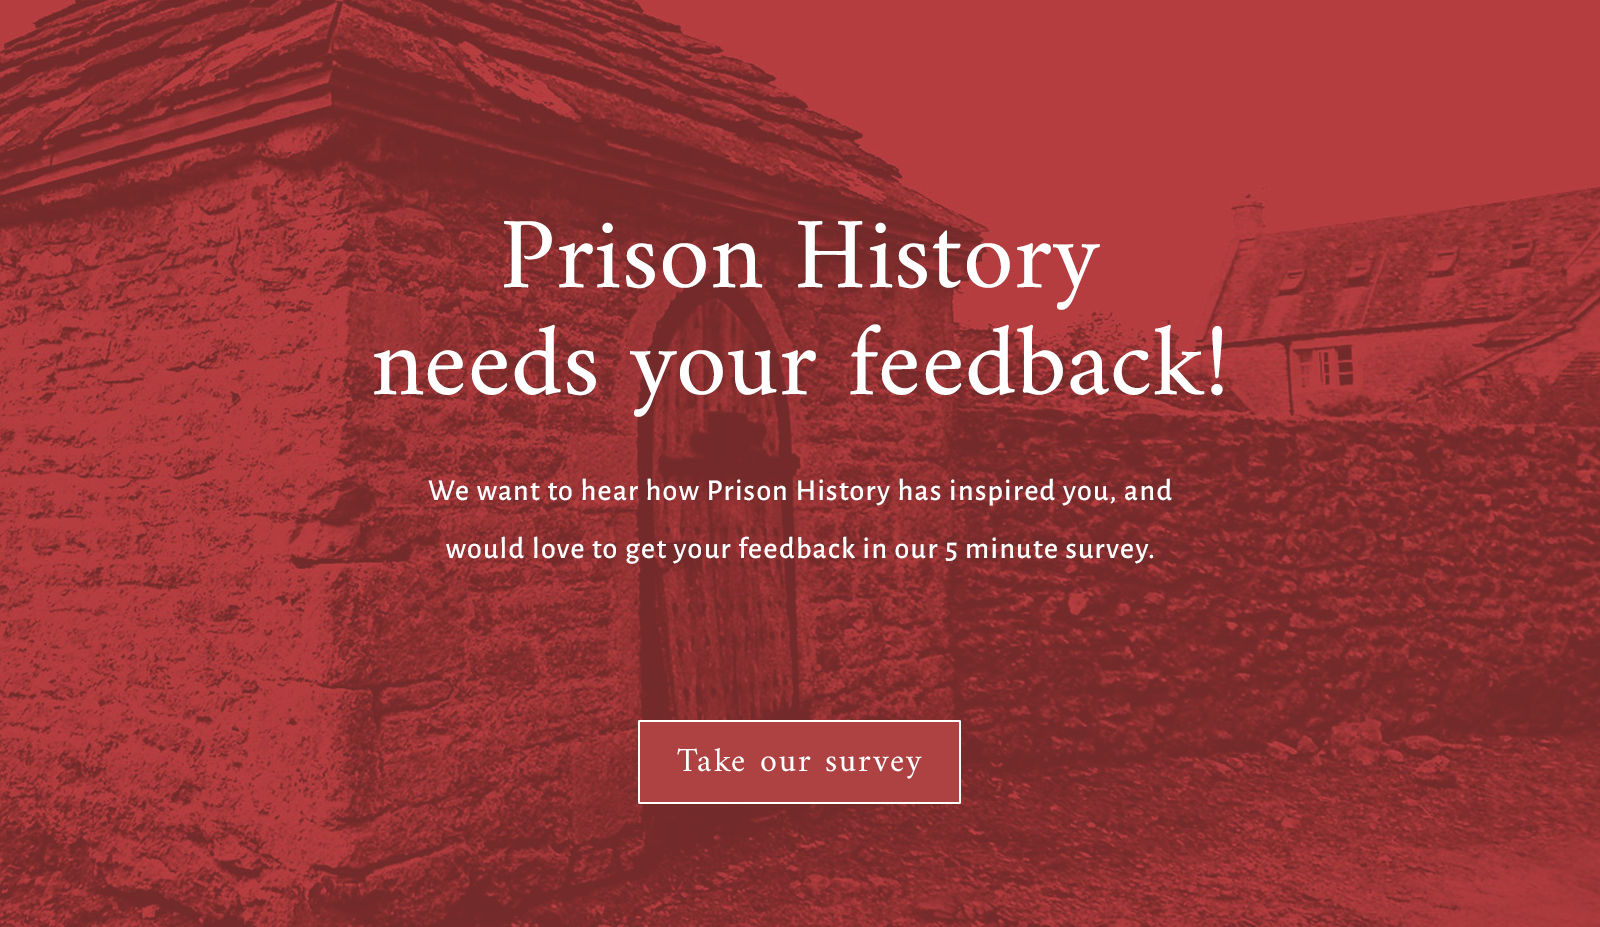 Prison History needs your feedback - banner graphic